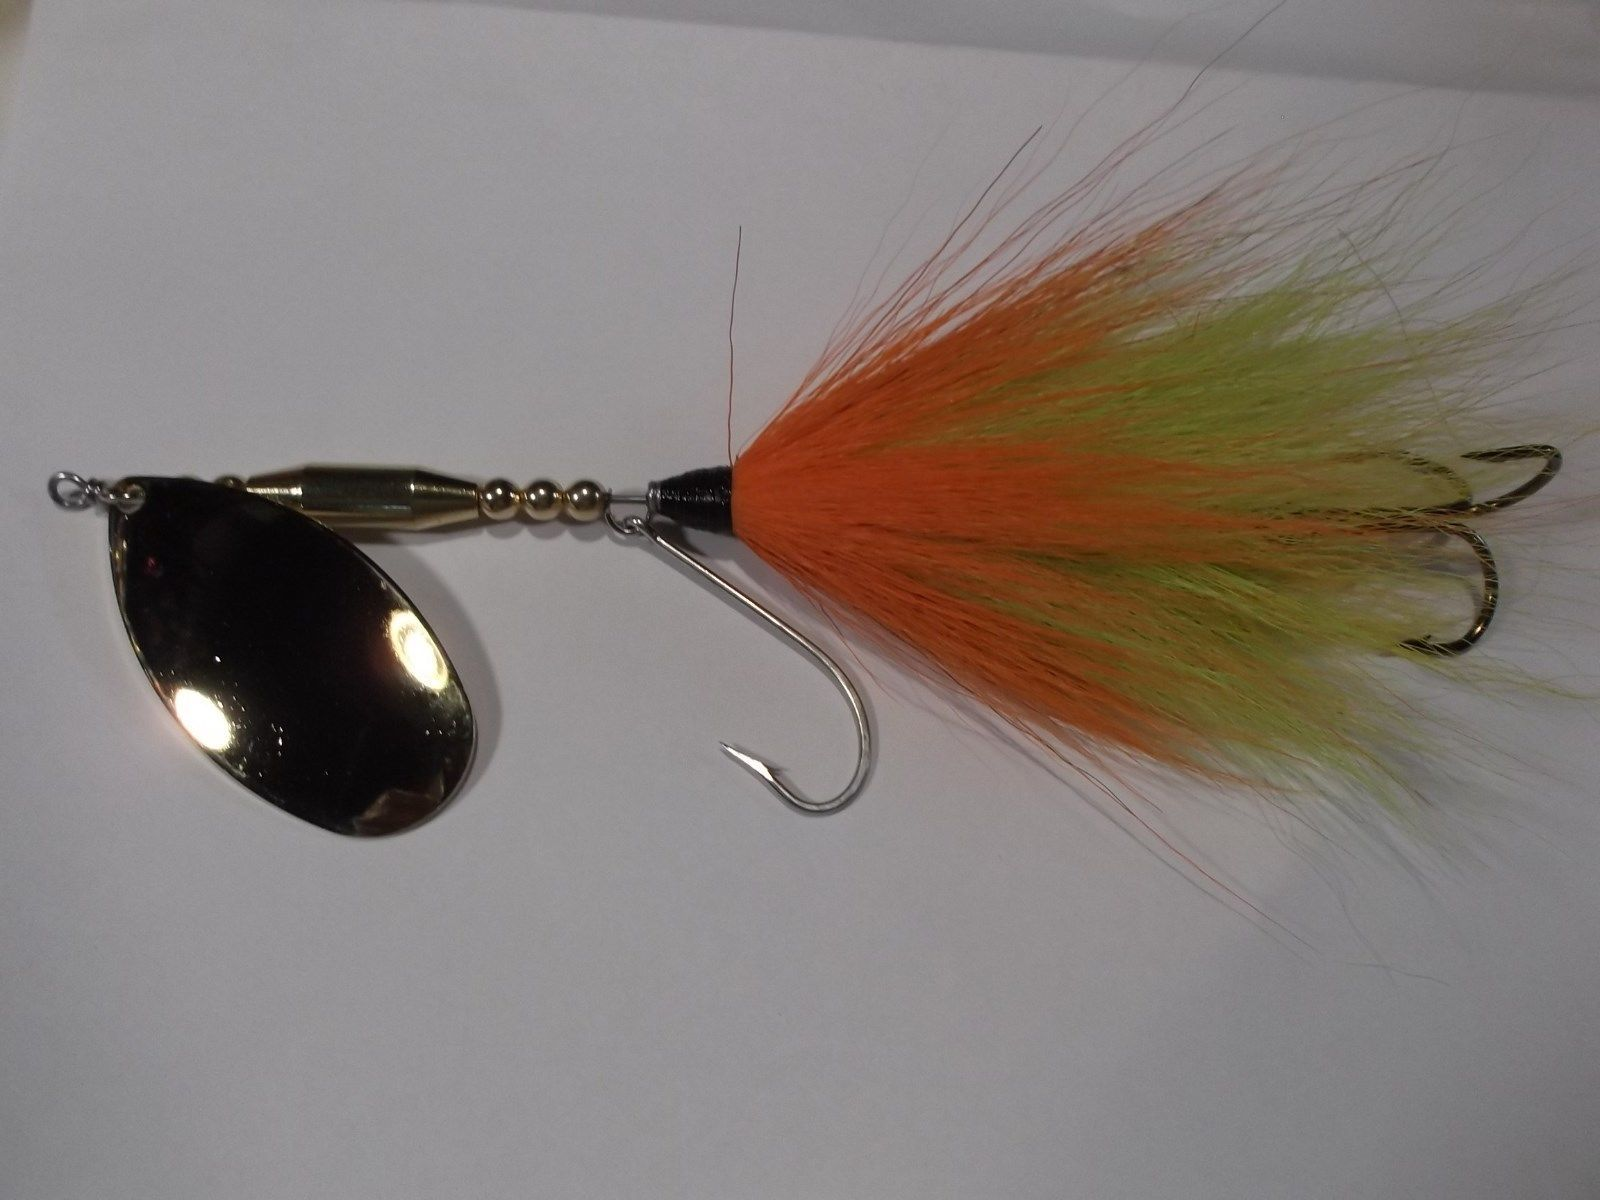 Musky bucktail spinner bait double w magnum 9 gold blade double musky bucktail spinner bait double w magnum 9 gold blade double mustad hooks ebay geenschuldenfo Gallery